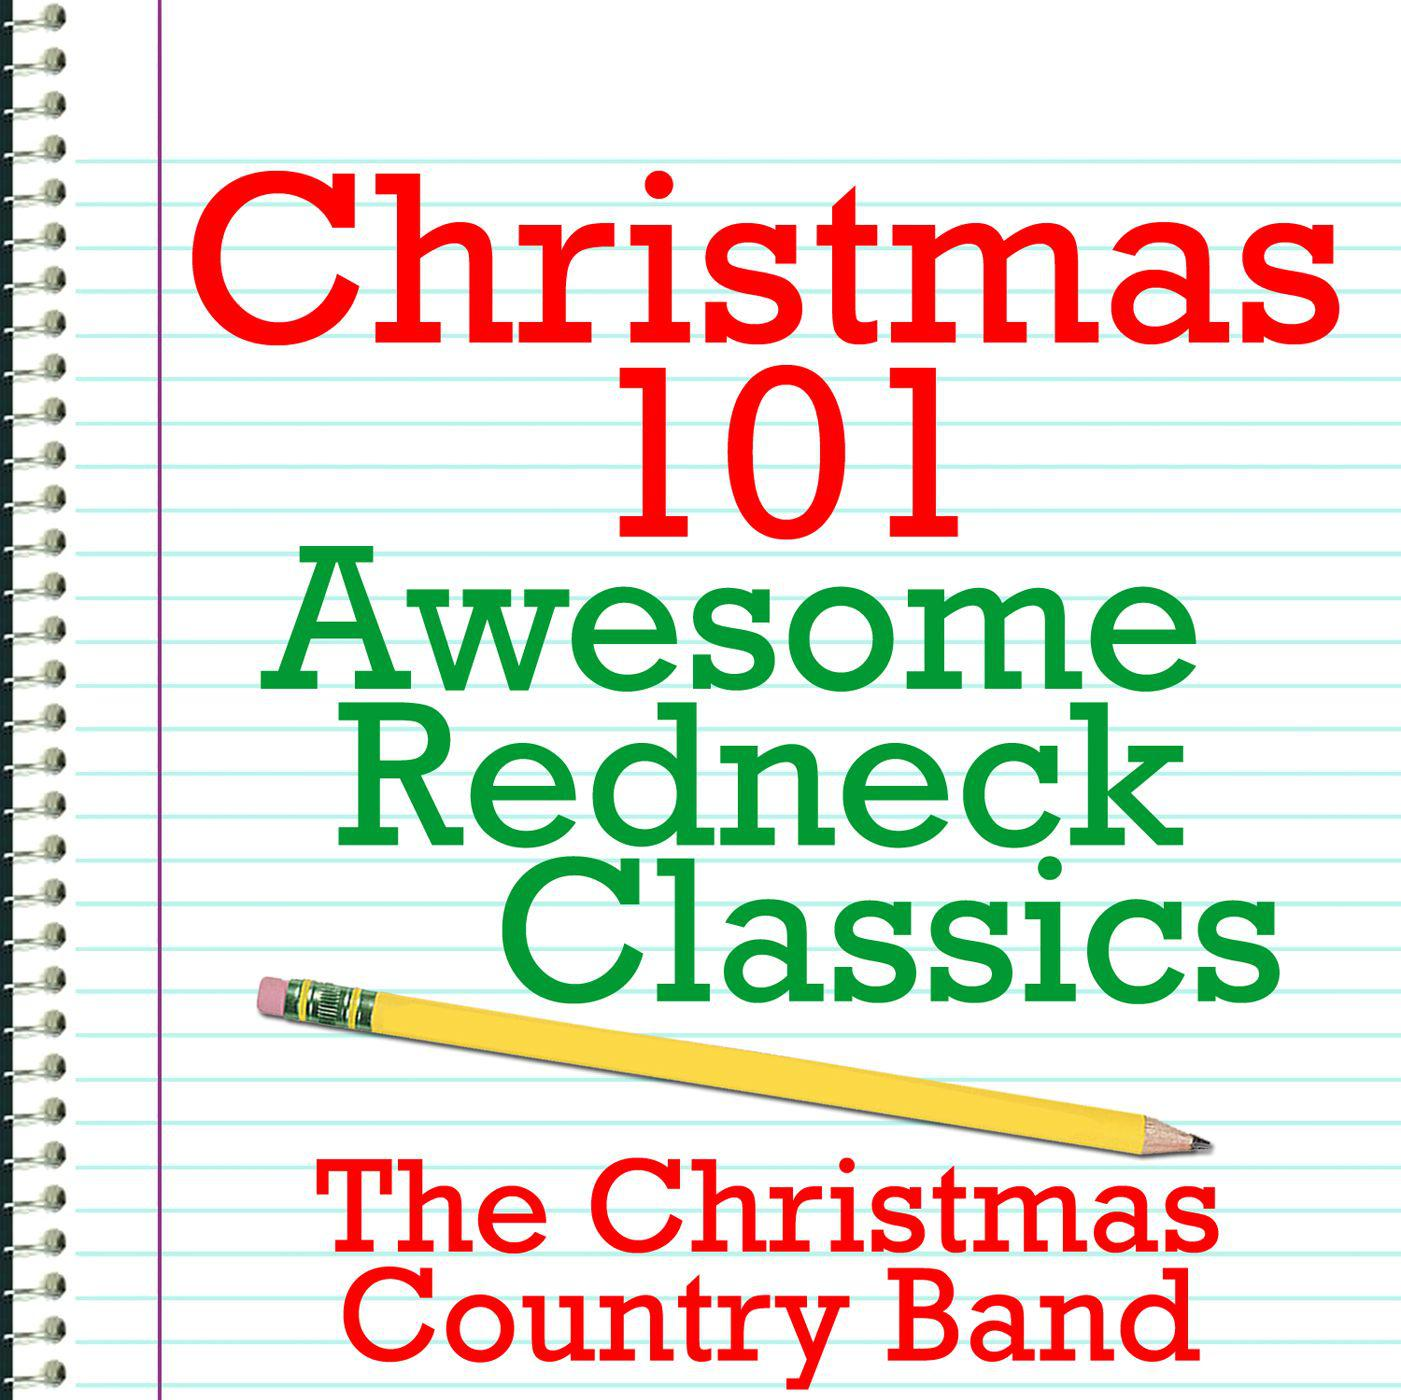 Christmas 101 - Awesome Redneck Classics